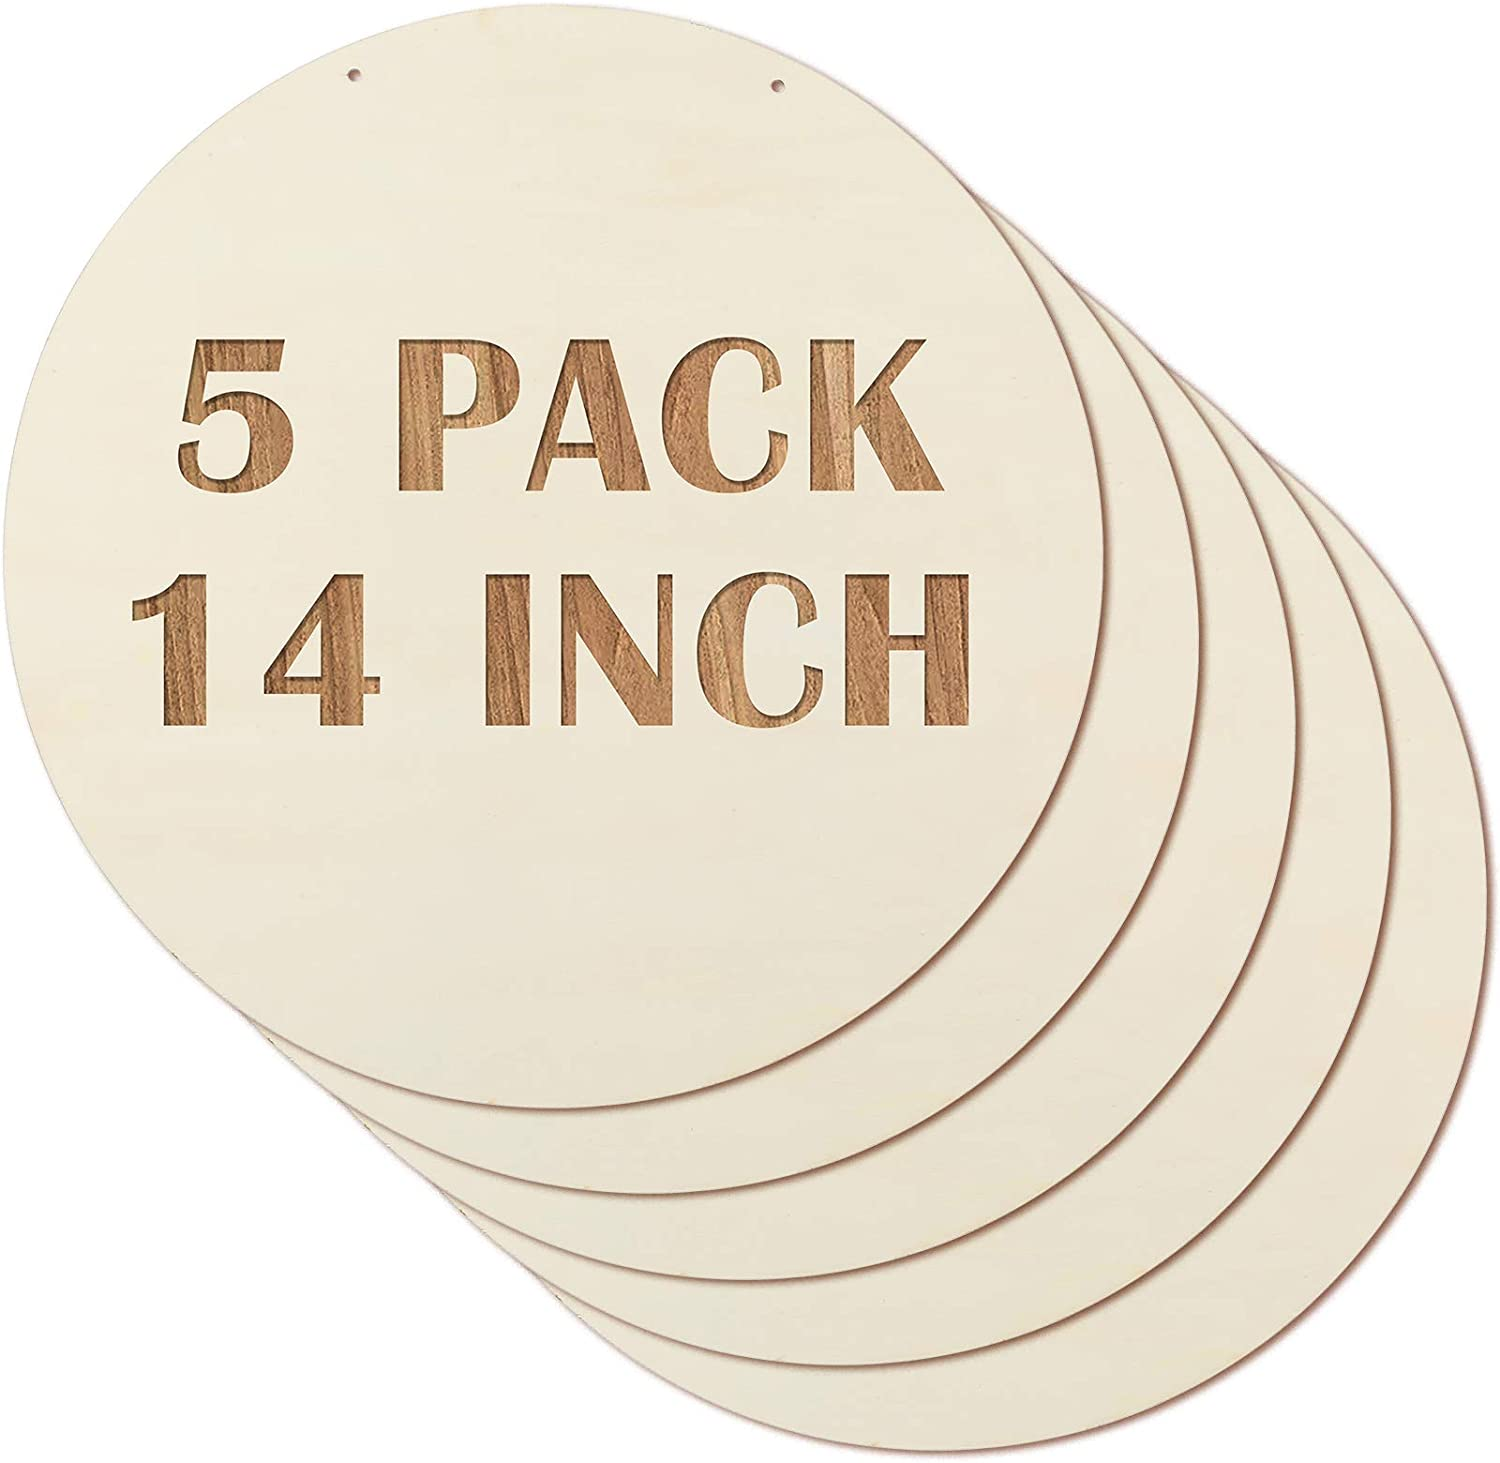 5 Pieces 14 Inch Round Wood Discs Unfinished Wooden Tags Circle Wood Chips Blank Wood Cutouts Rustic Wooden Slices Round Hanging Ornaments with 2 Hole and 3 Meter Rope for Christmas New Year Decor